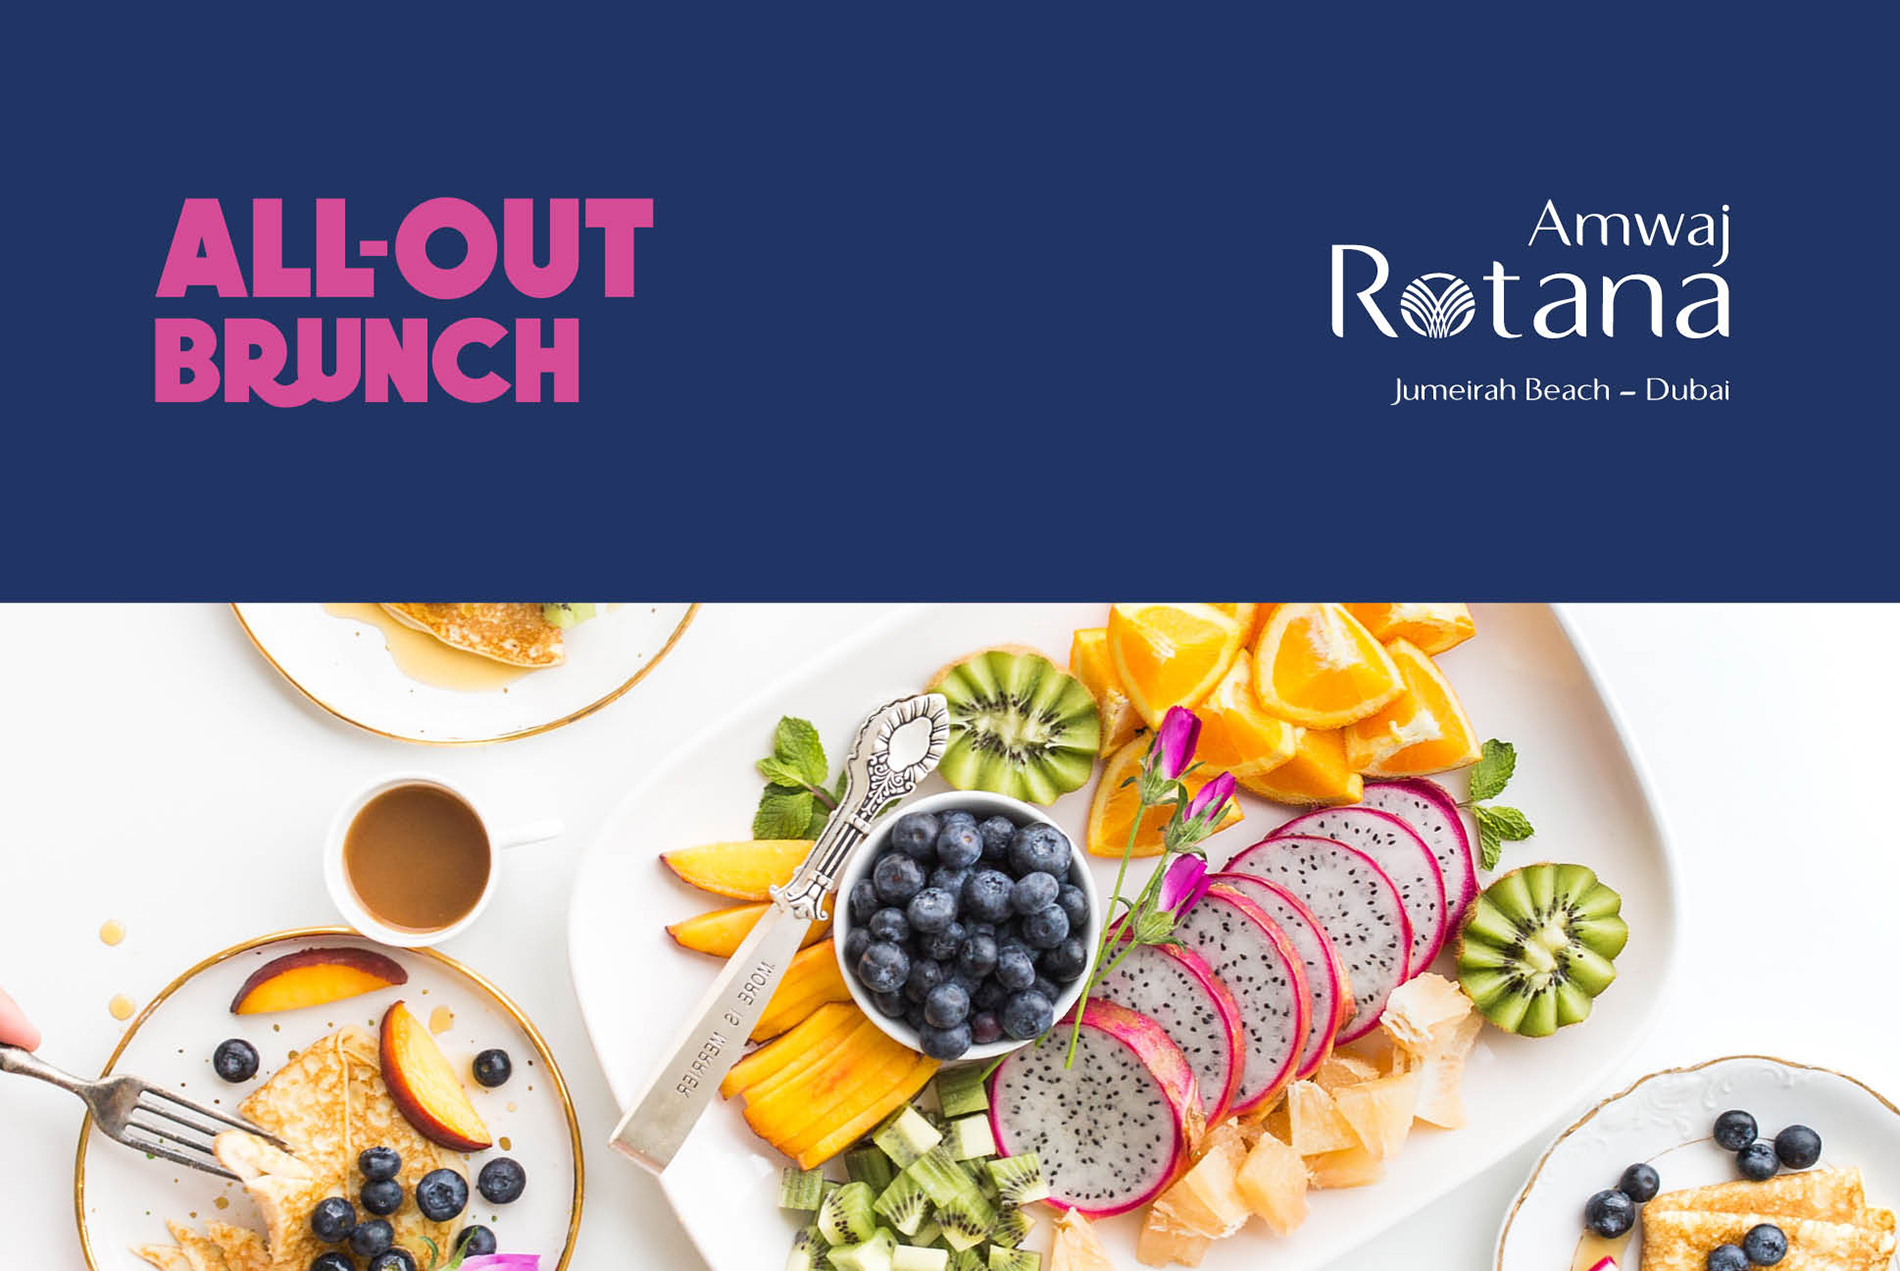 All-out Brunch Branding